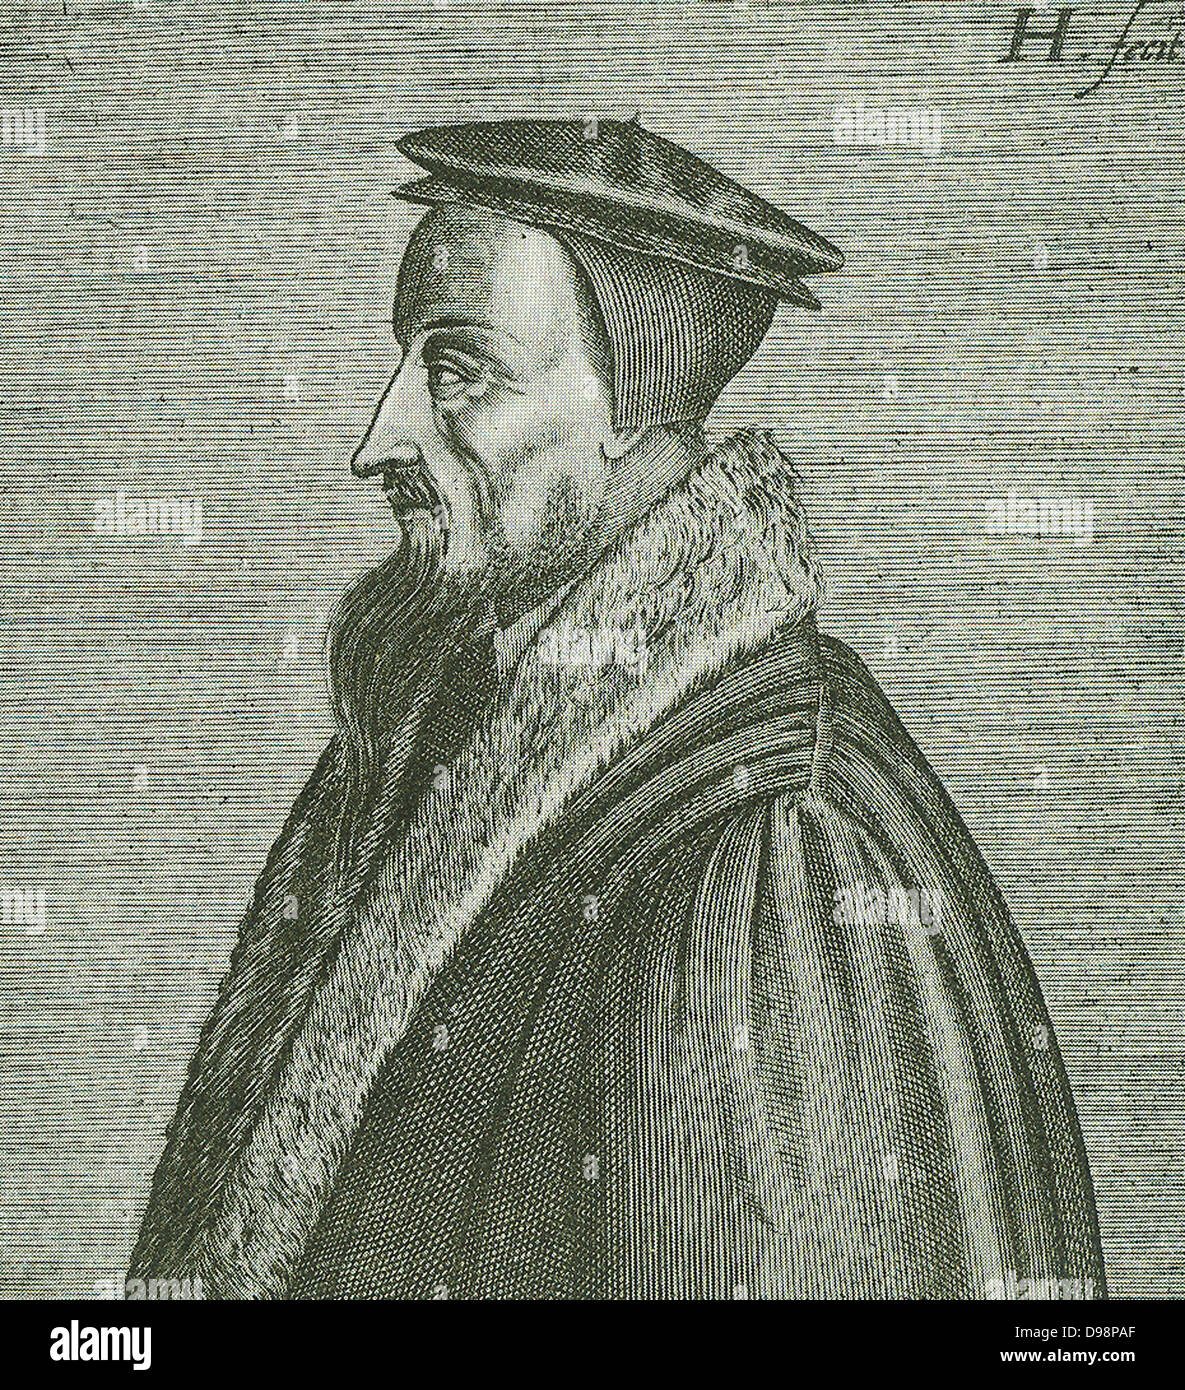 John Calvin (1509-1564) the great French reformer, is renowned for his work 'The Institutes of the Christian - Stock Image